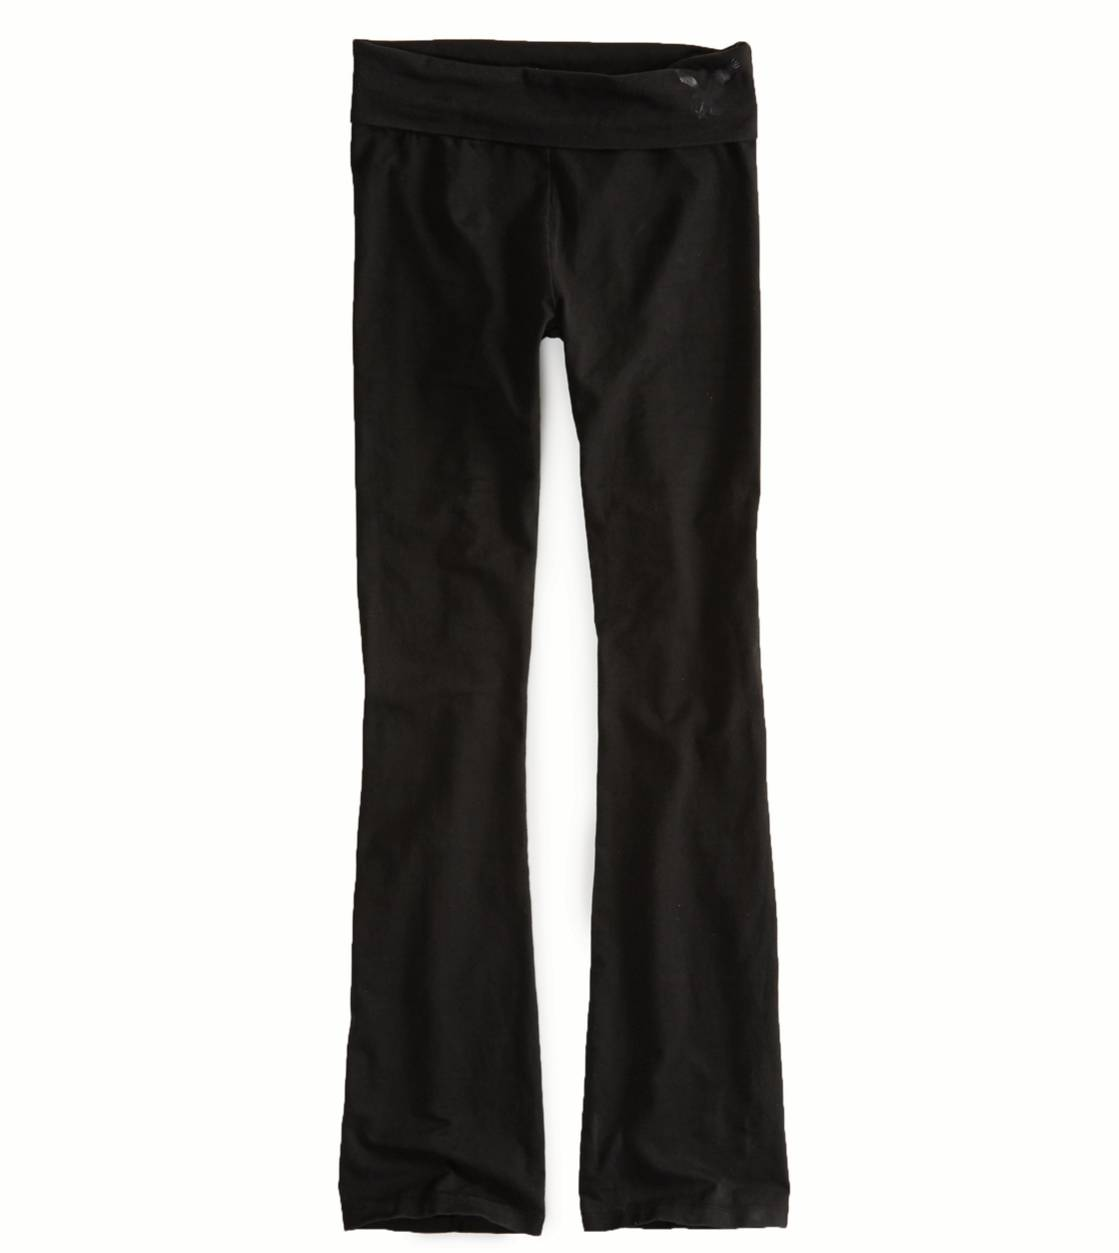 True Black AEO Factory Yoga Pant